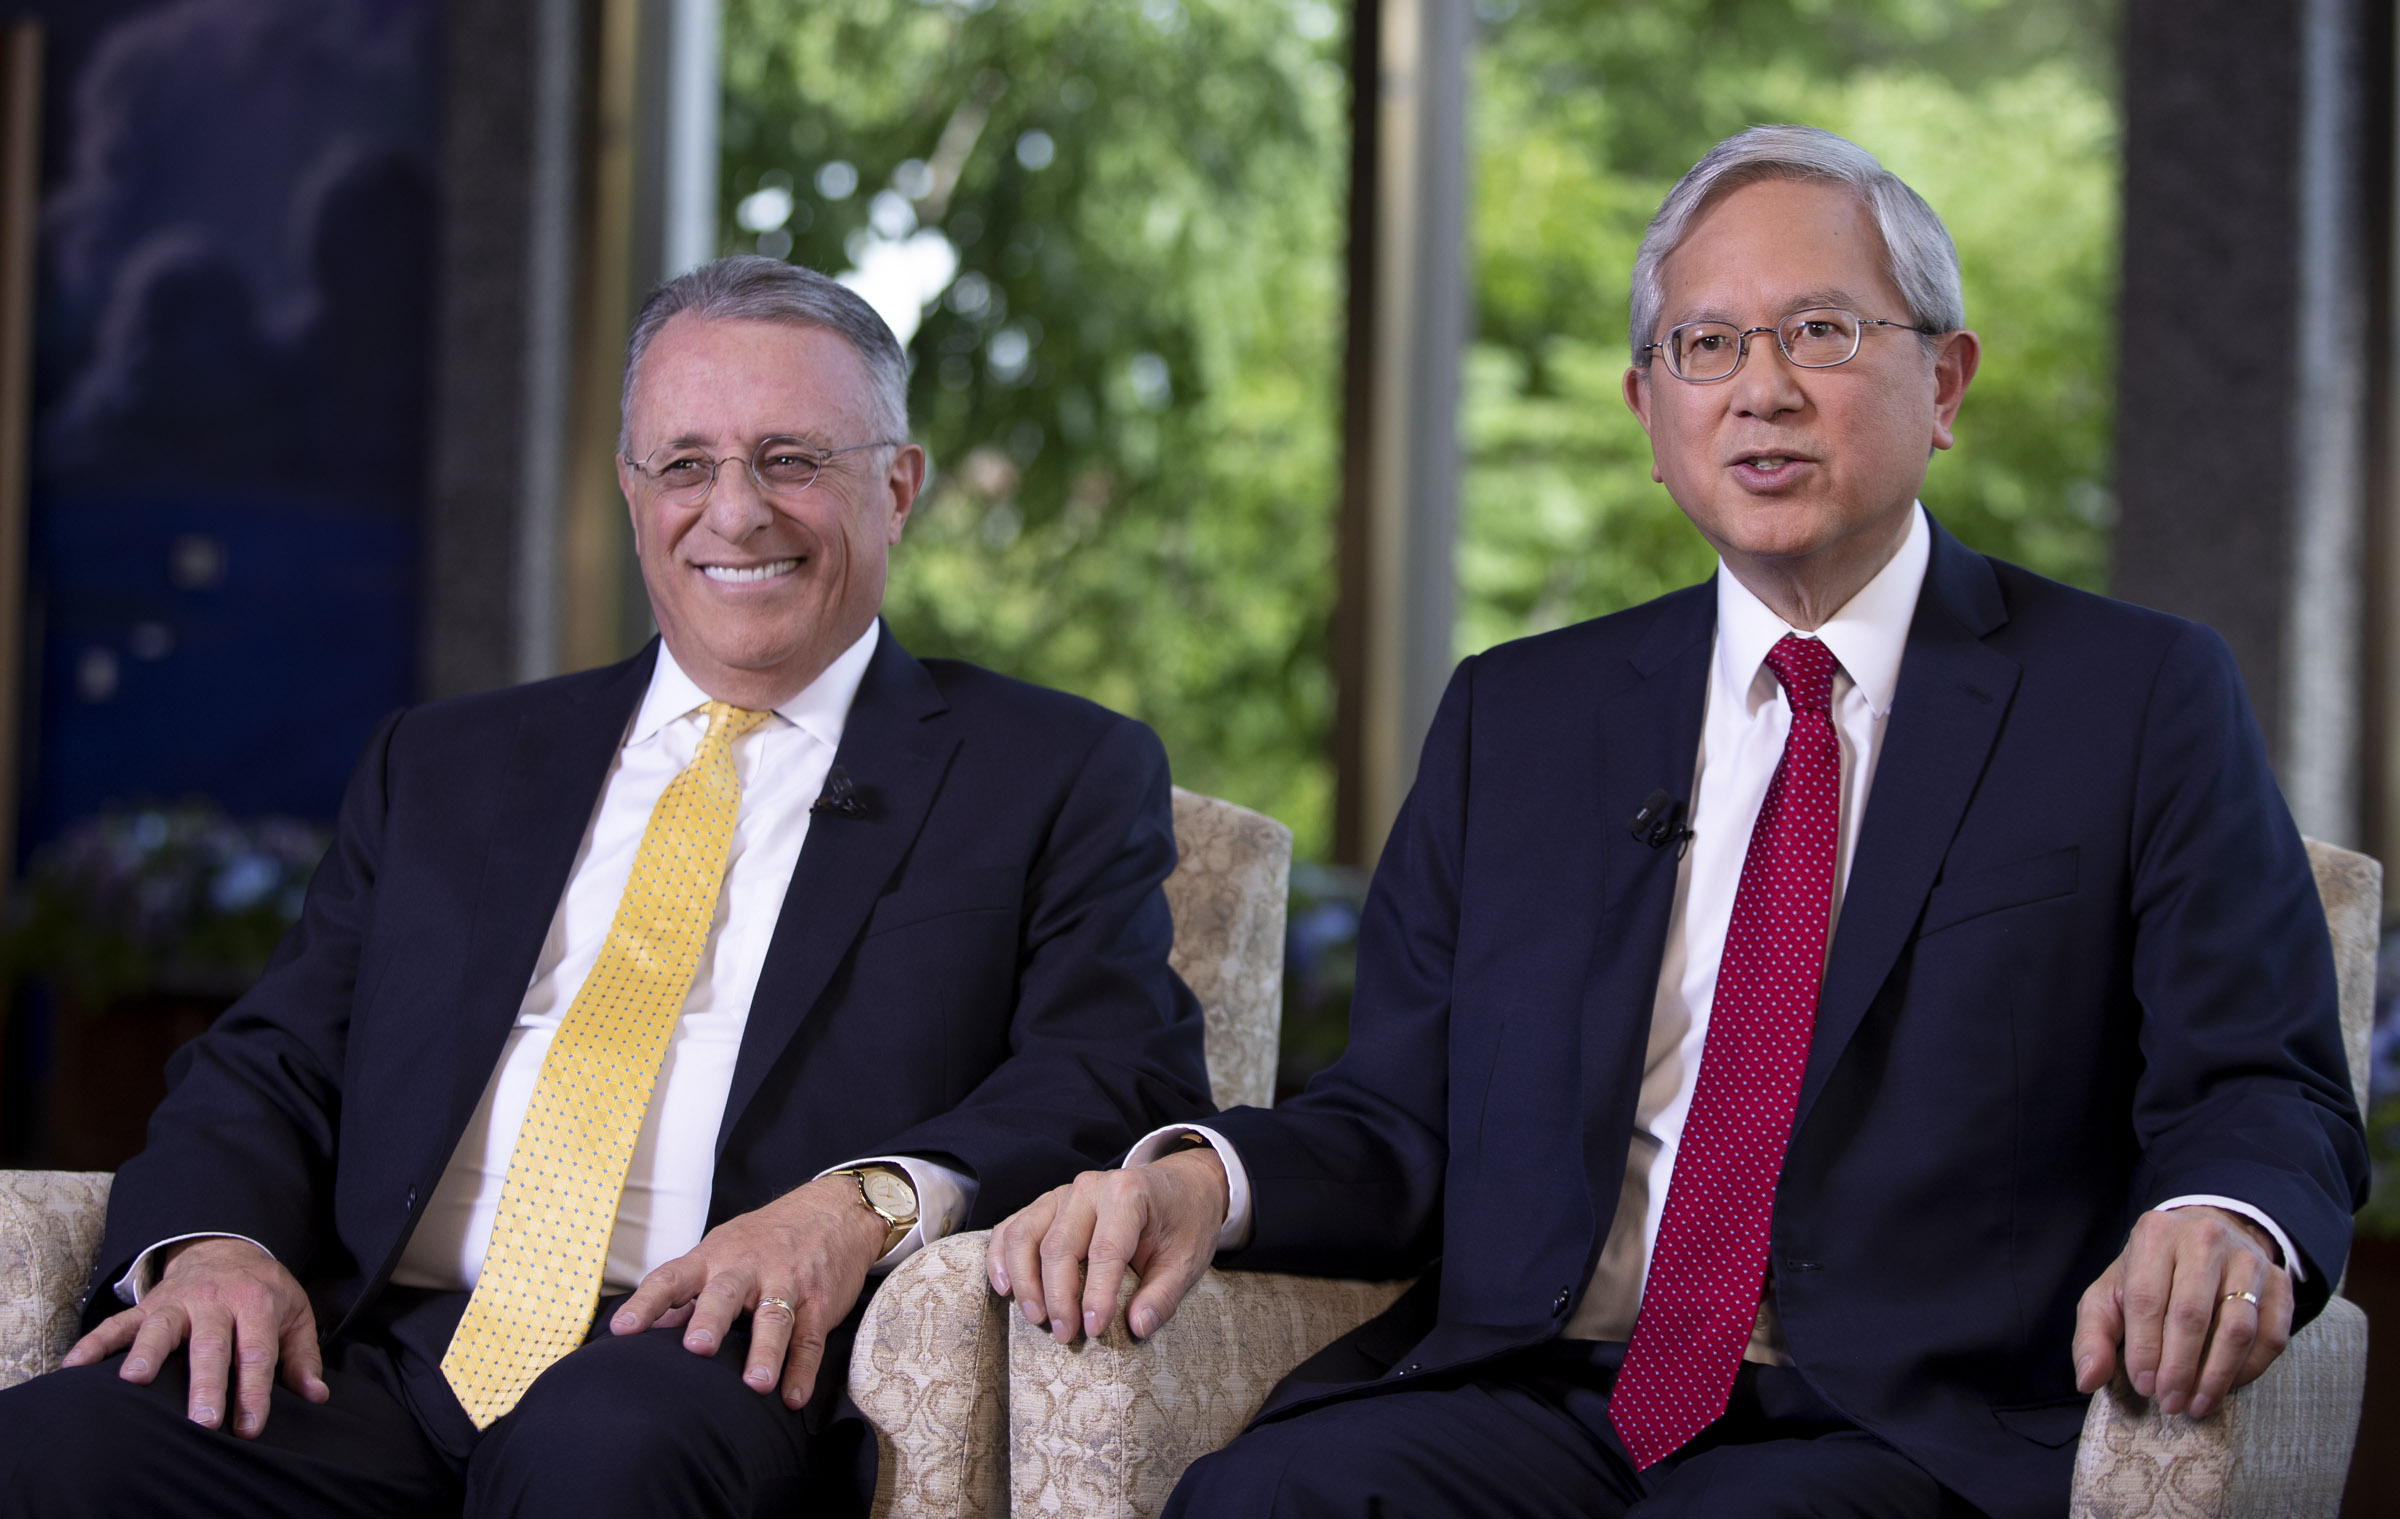 Elder Ulisses Soares and Elder Gerrit W. Gong answer questions during an interview in the North Visitors Center on Temple Square in Salt Lake City on Thursday, June 28, 2018.